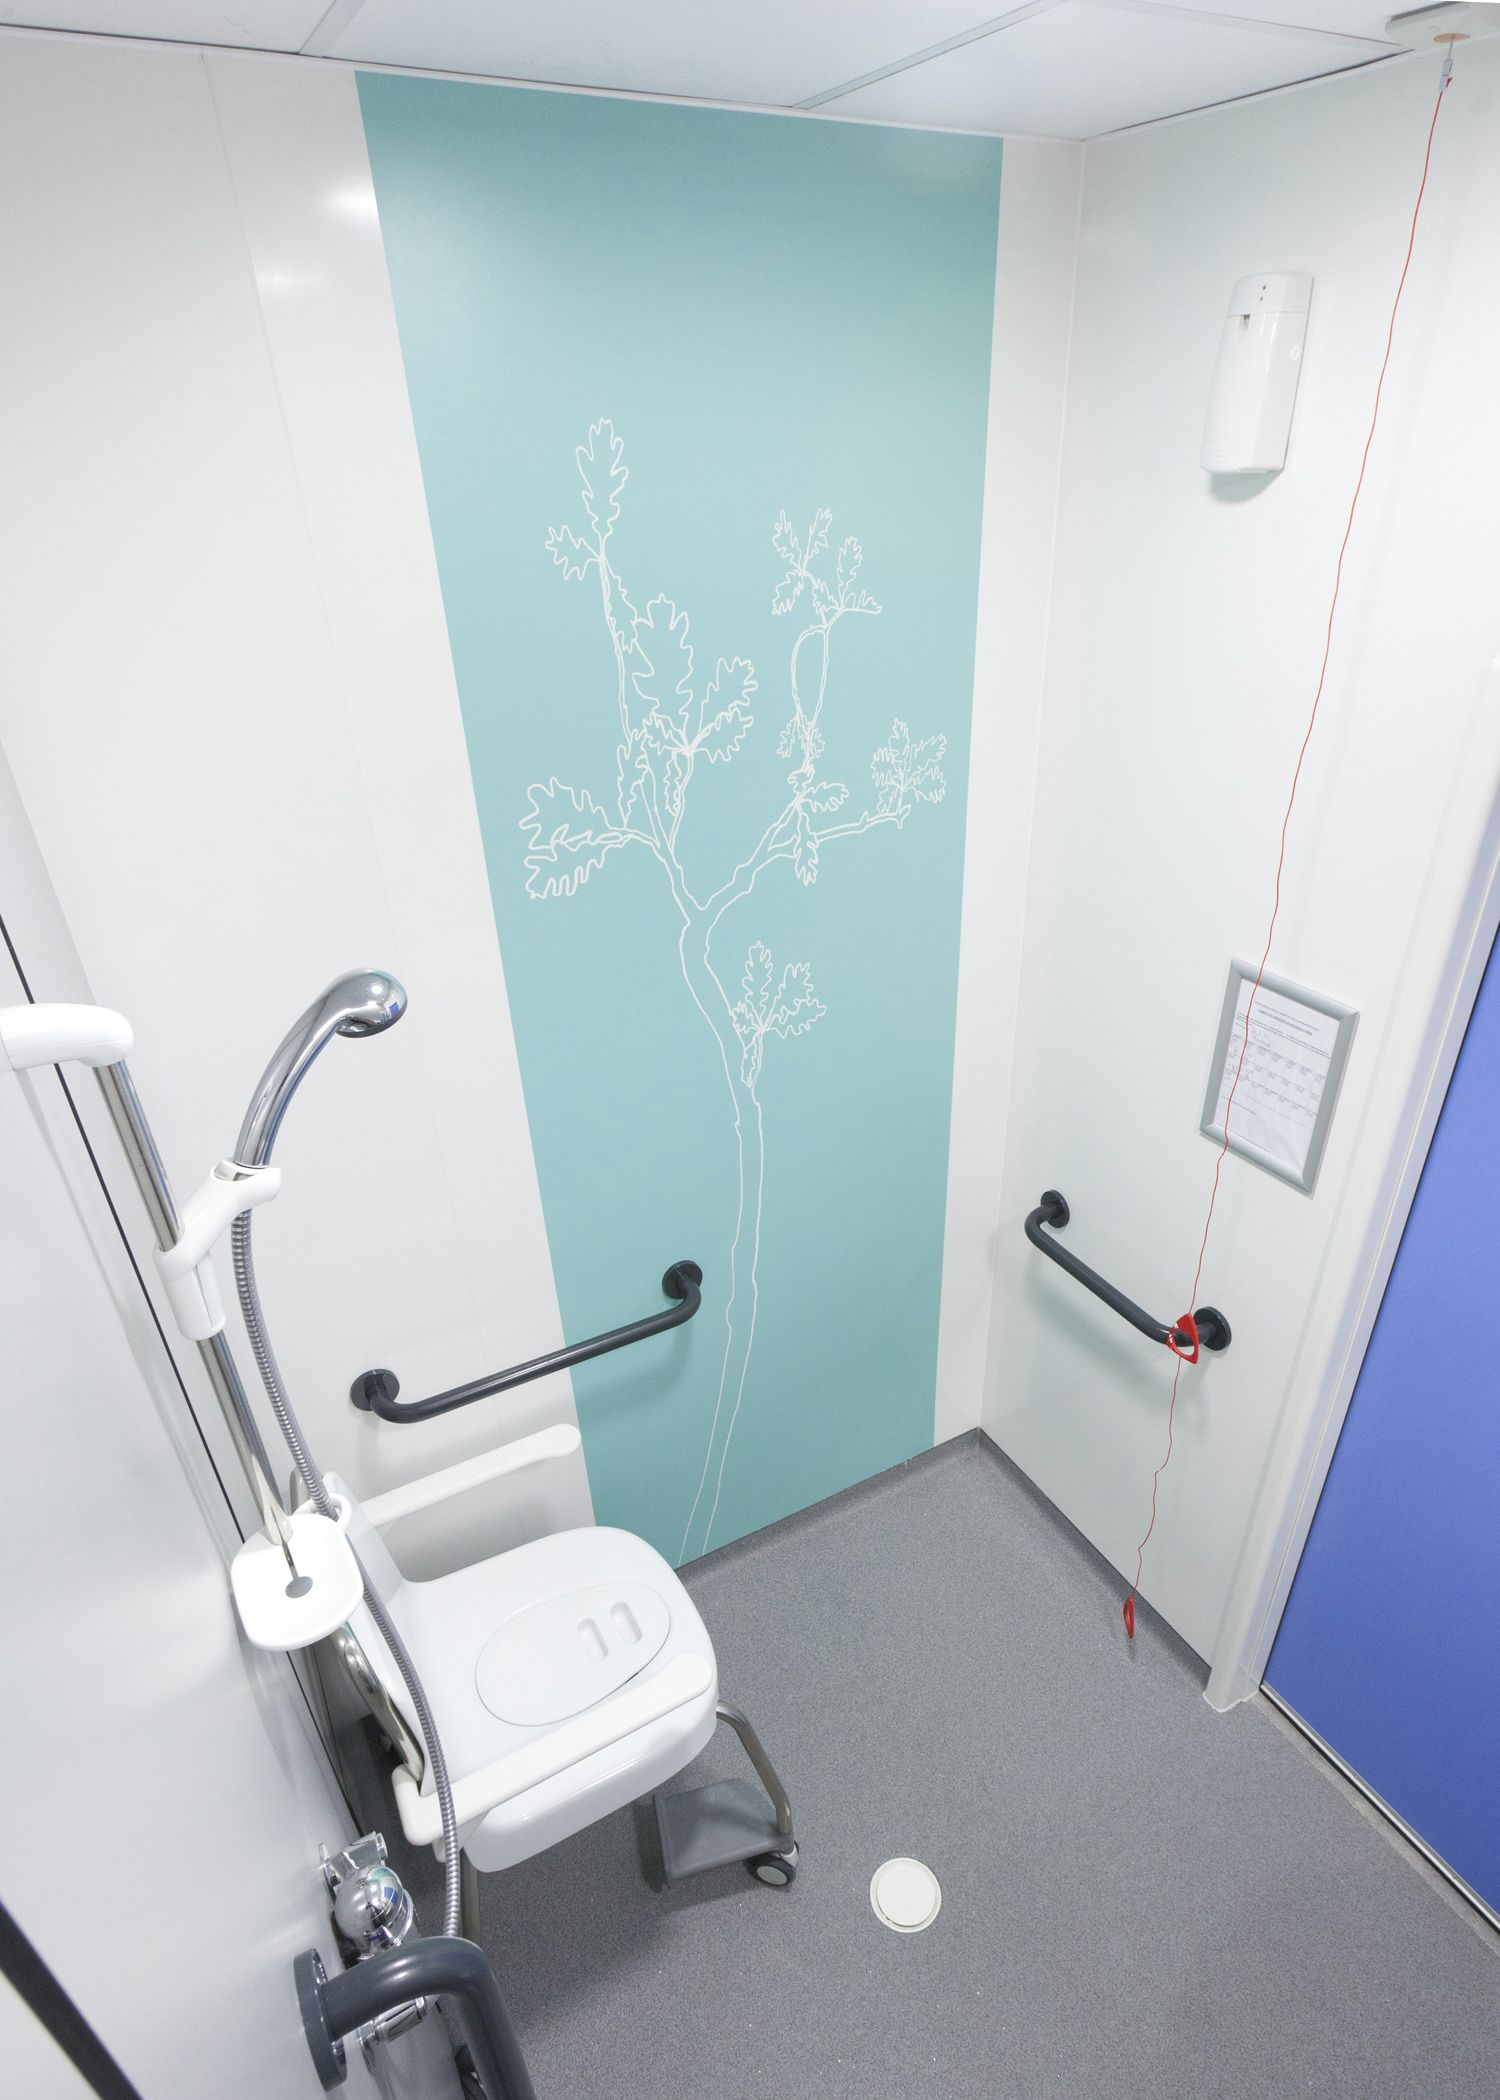 Salle De Bain Irigny ~ Brightening Up A Hospital Ensuite Bathroom Line Art By Artinsite